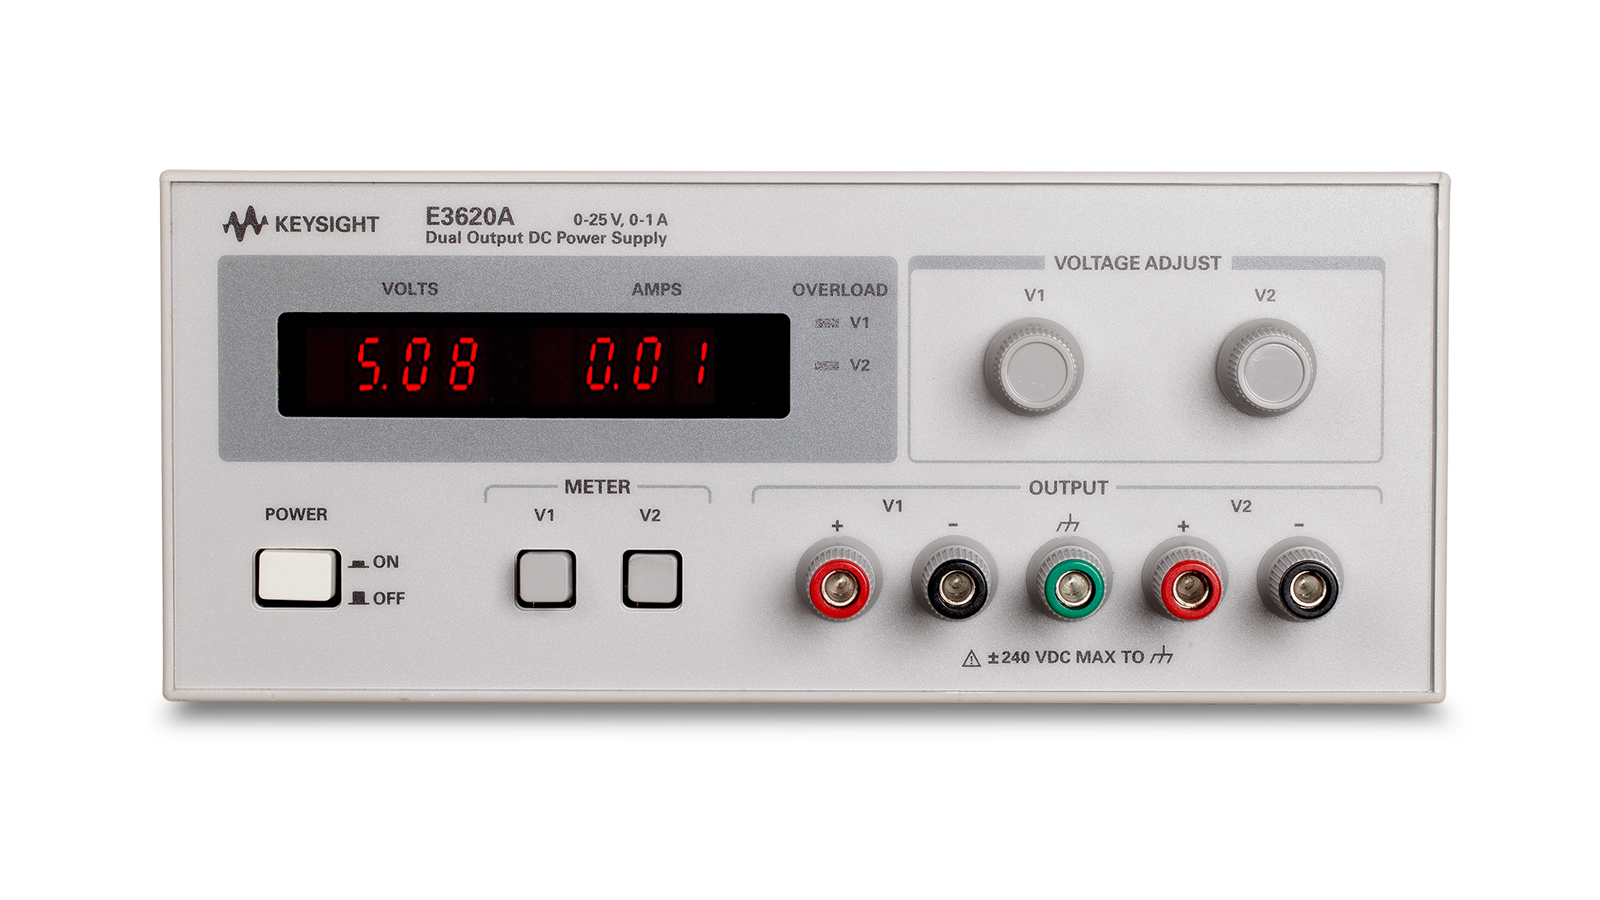 E3620A Series Adjustable Power Supply